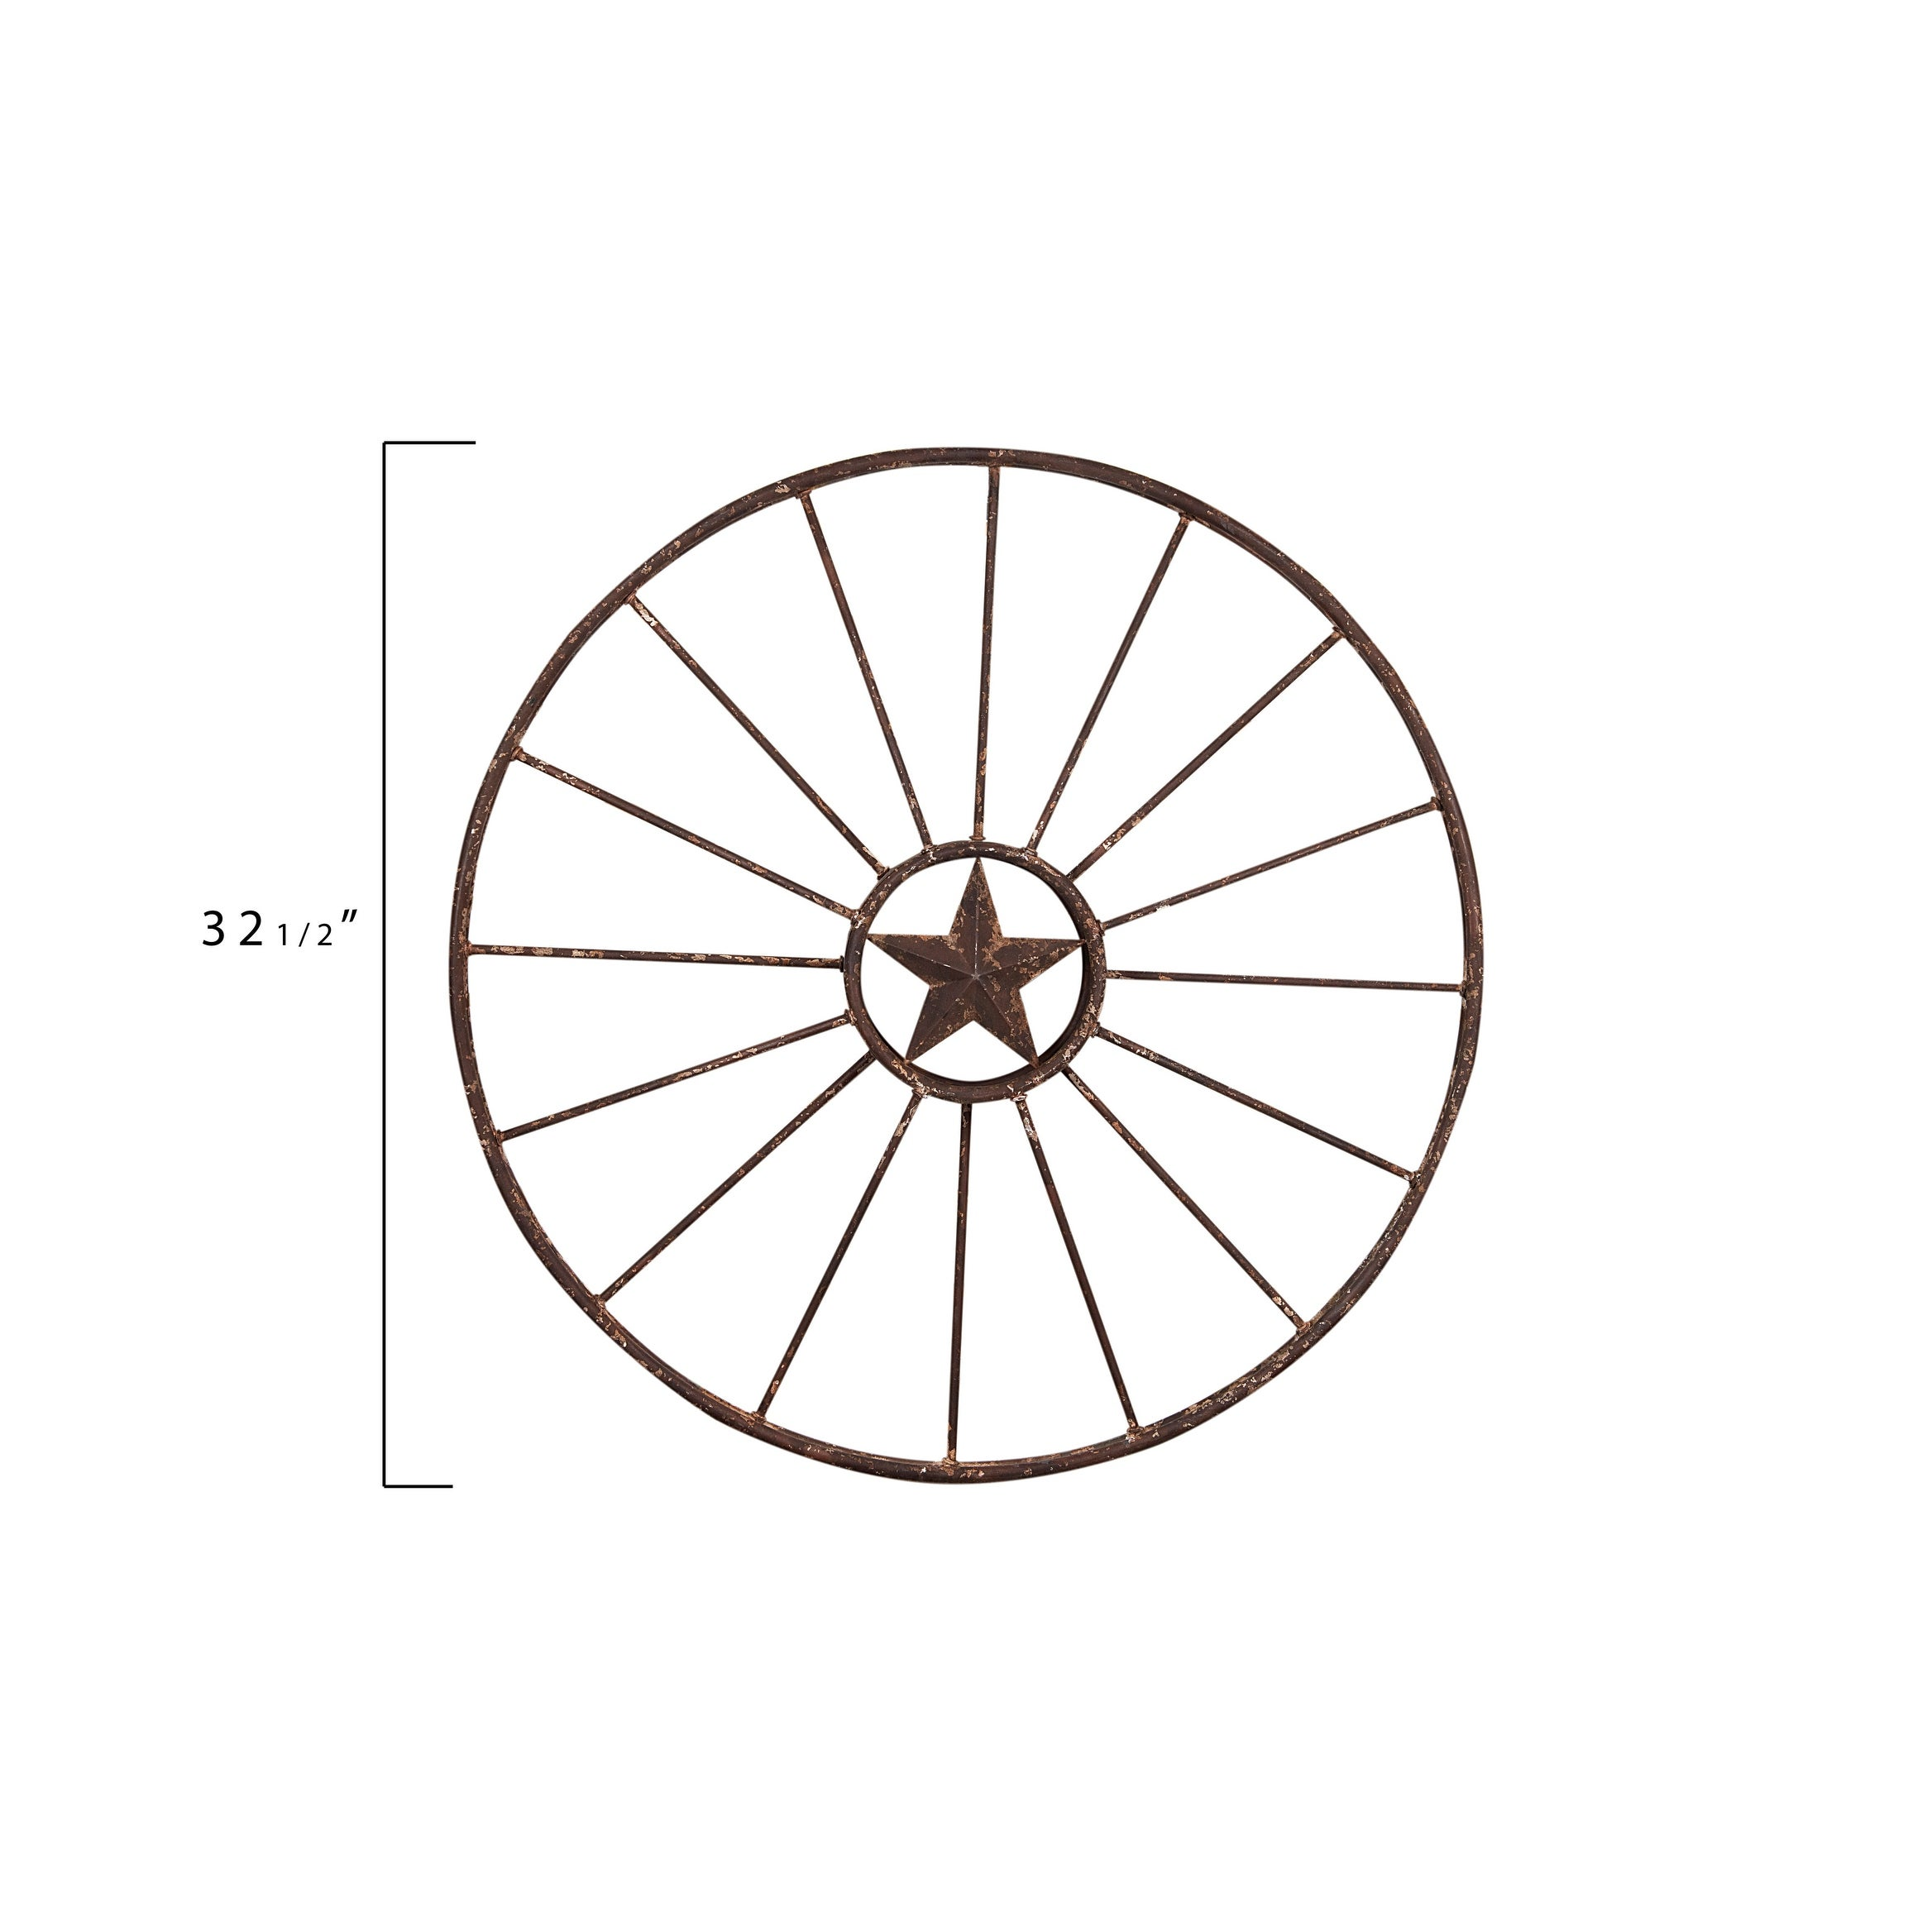 Wagon Wheel With Star Wall Decor Rust Overstock 31298551